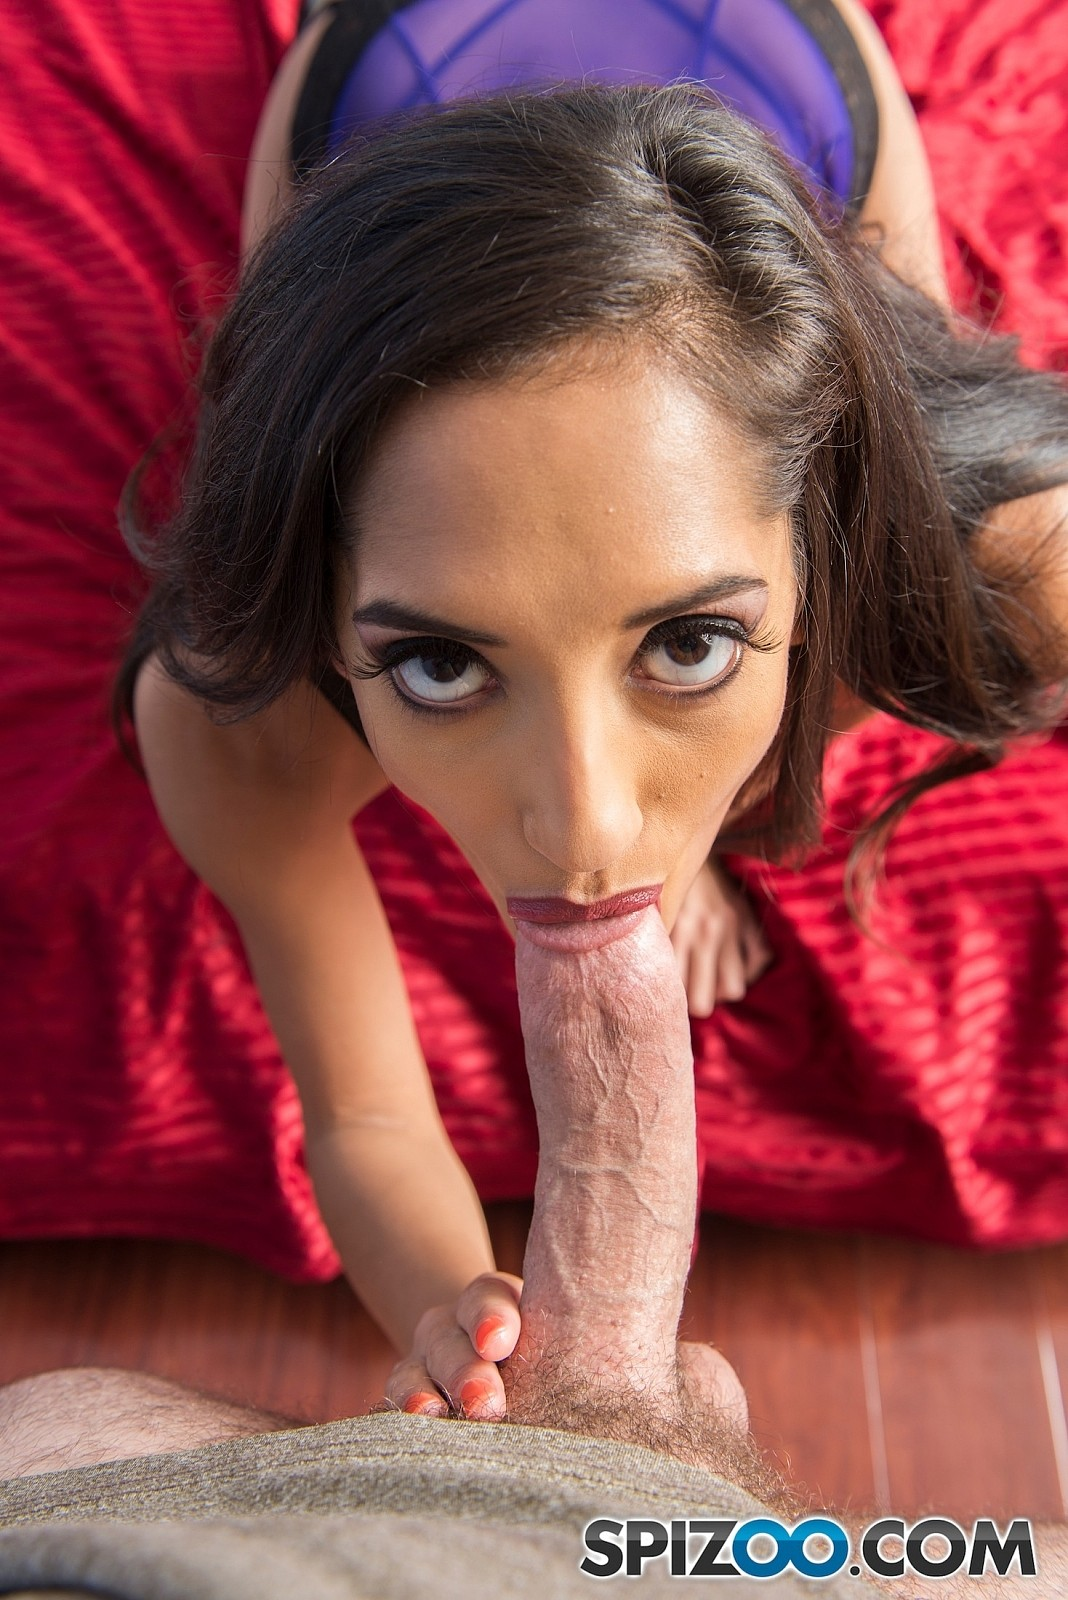 Chloeamour - I Want All Your Cum